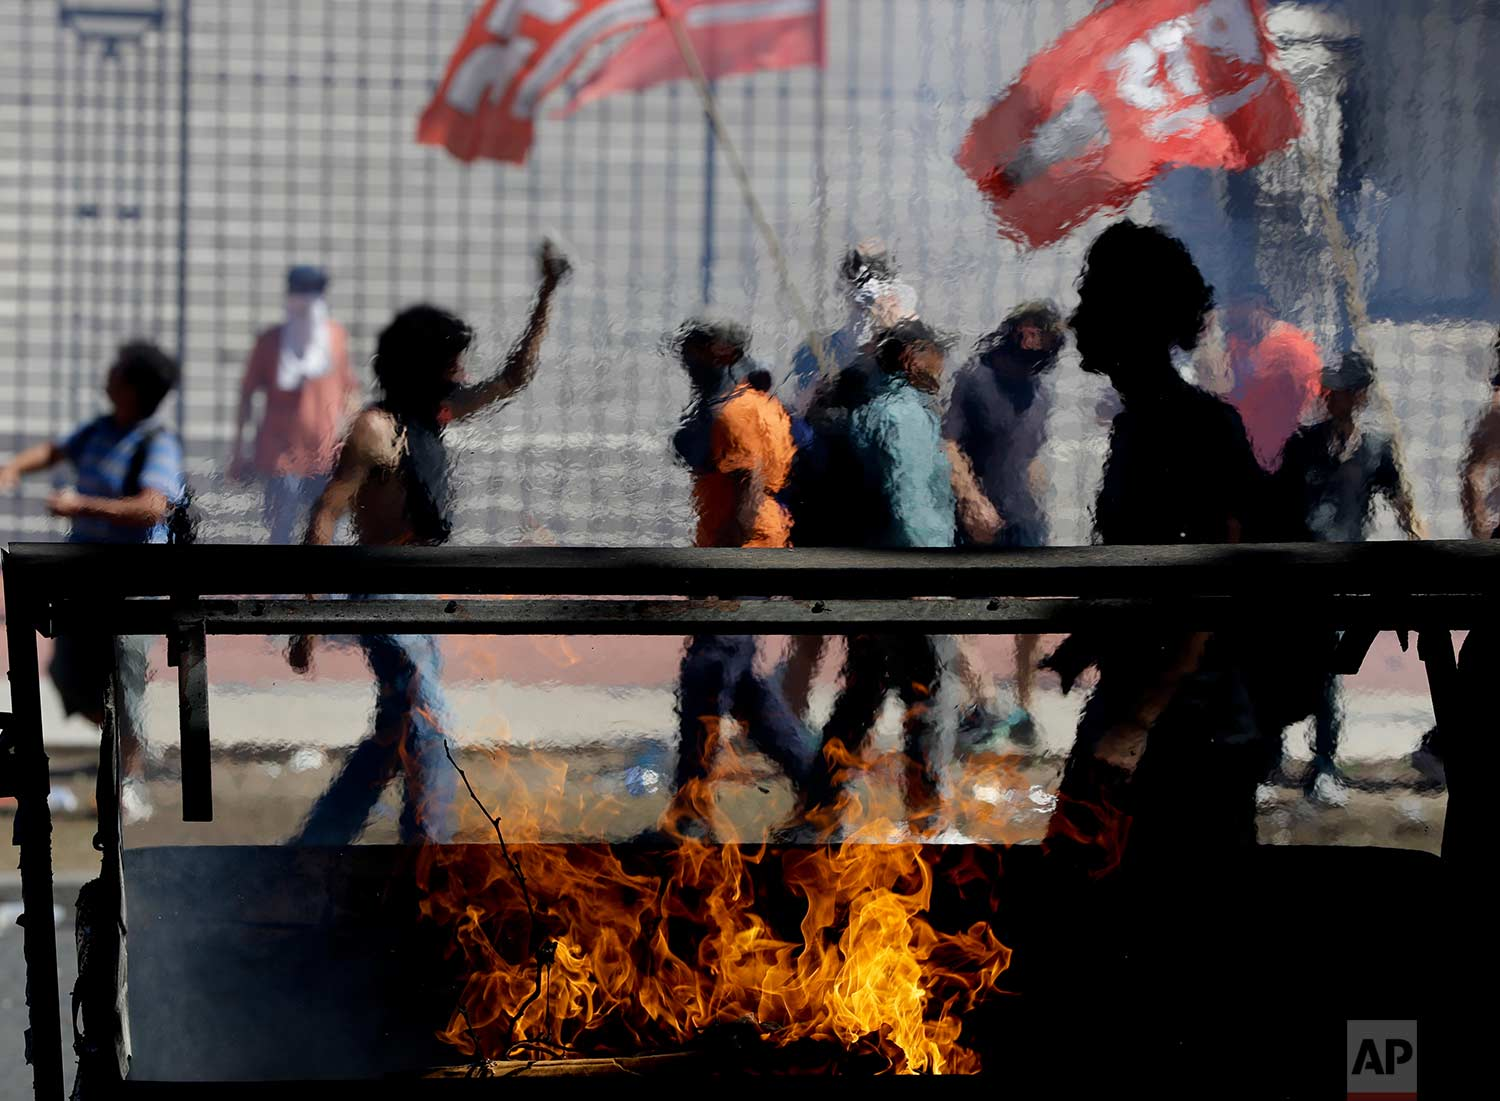 Demonstrators protest against reforms to the retirement and pension system, in Buenos Aires, Argentina, Thursday, Dec. 14, 2017. (AP Photo/Natacha Pisarenko)